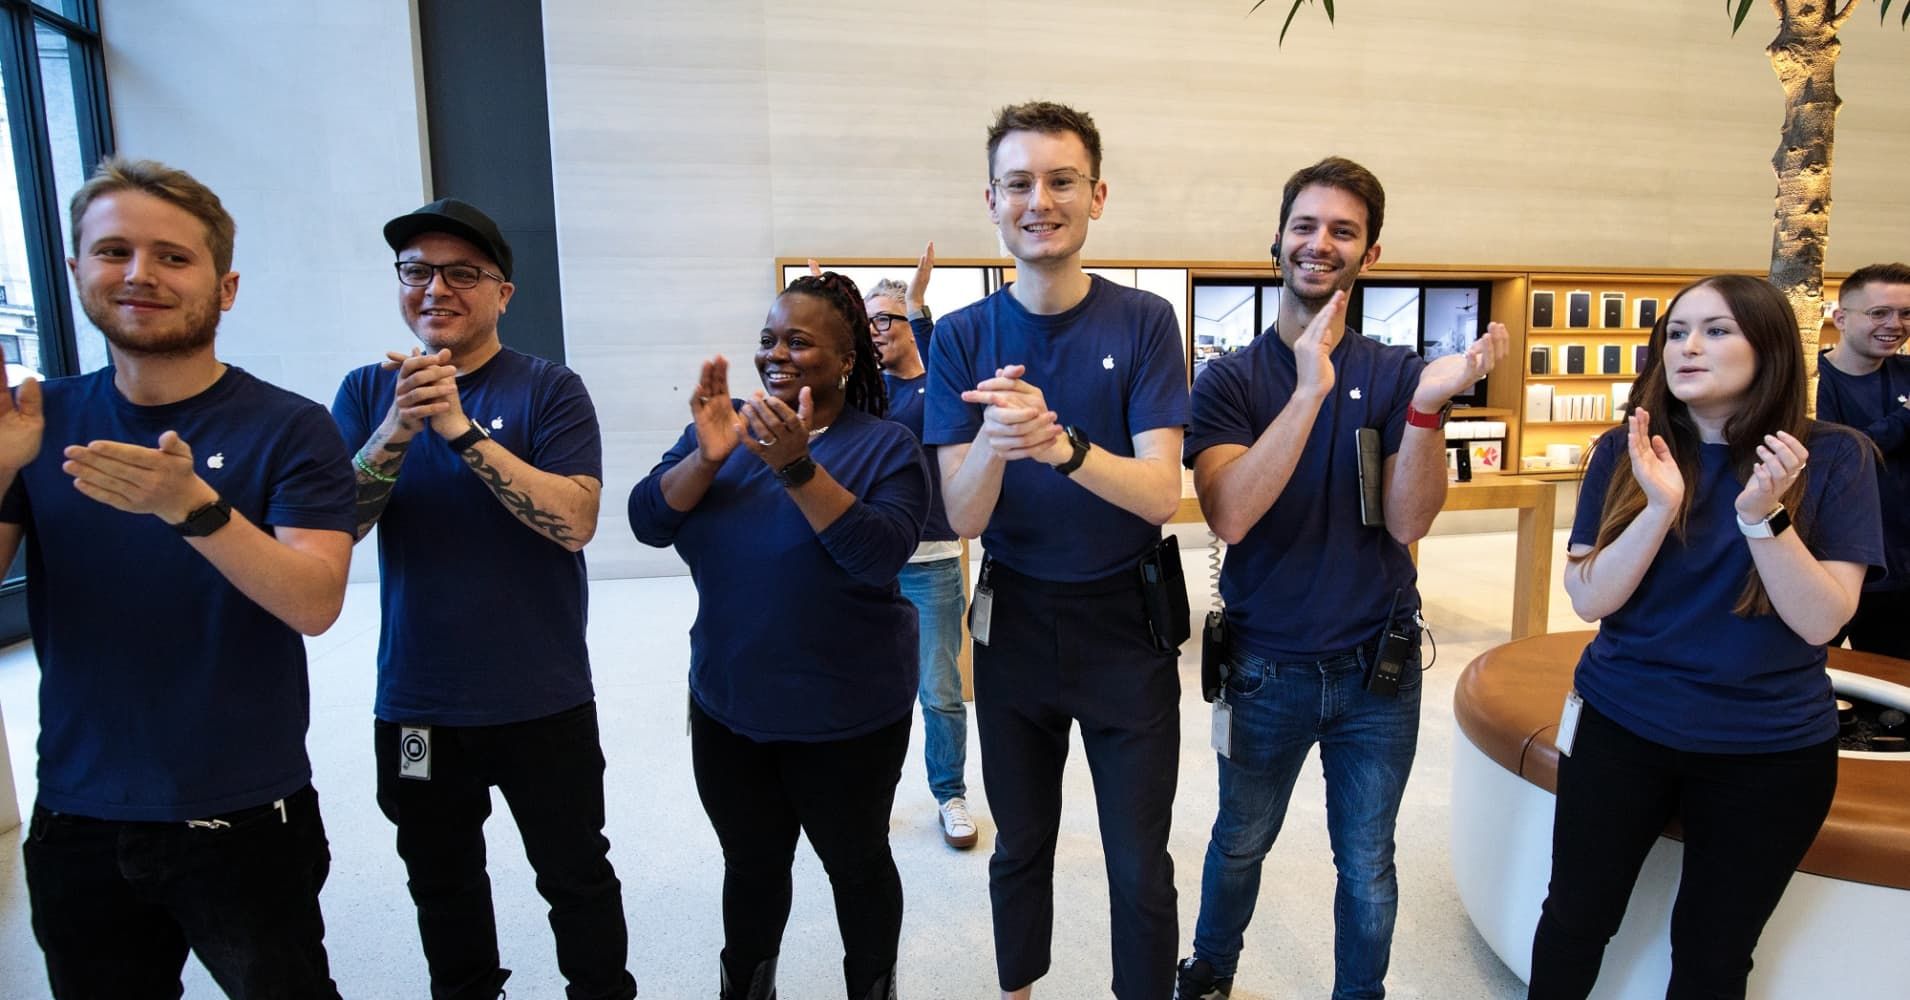 Apple employees clap